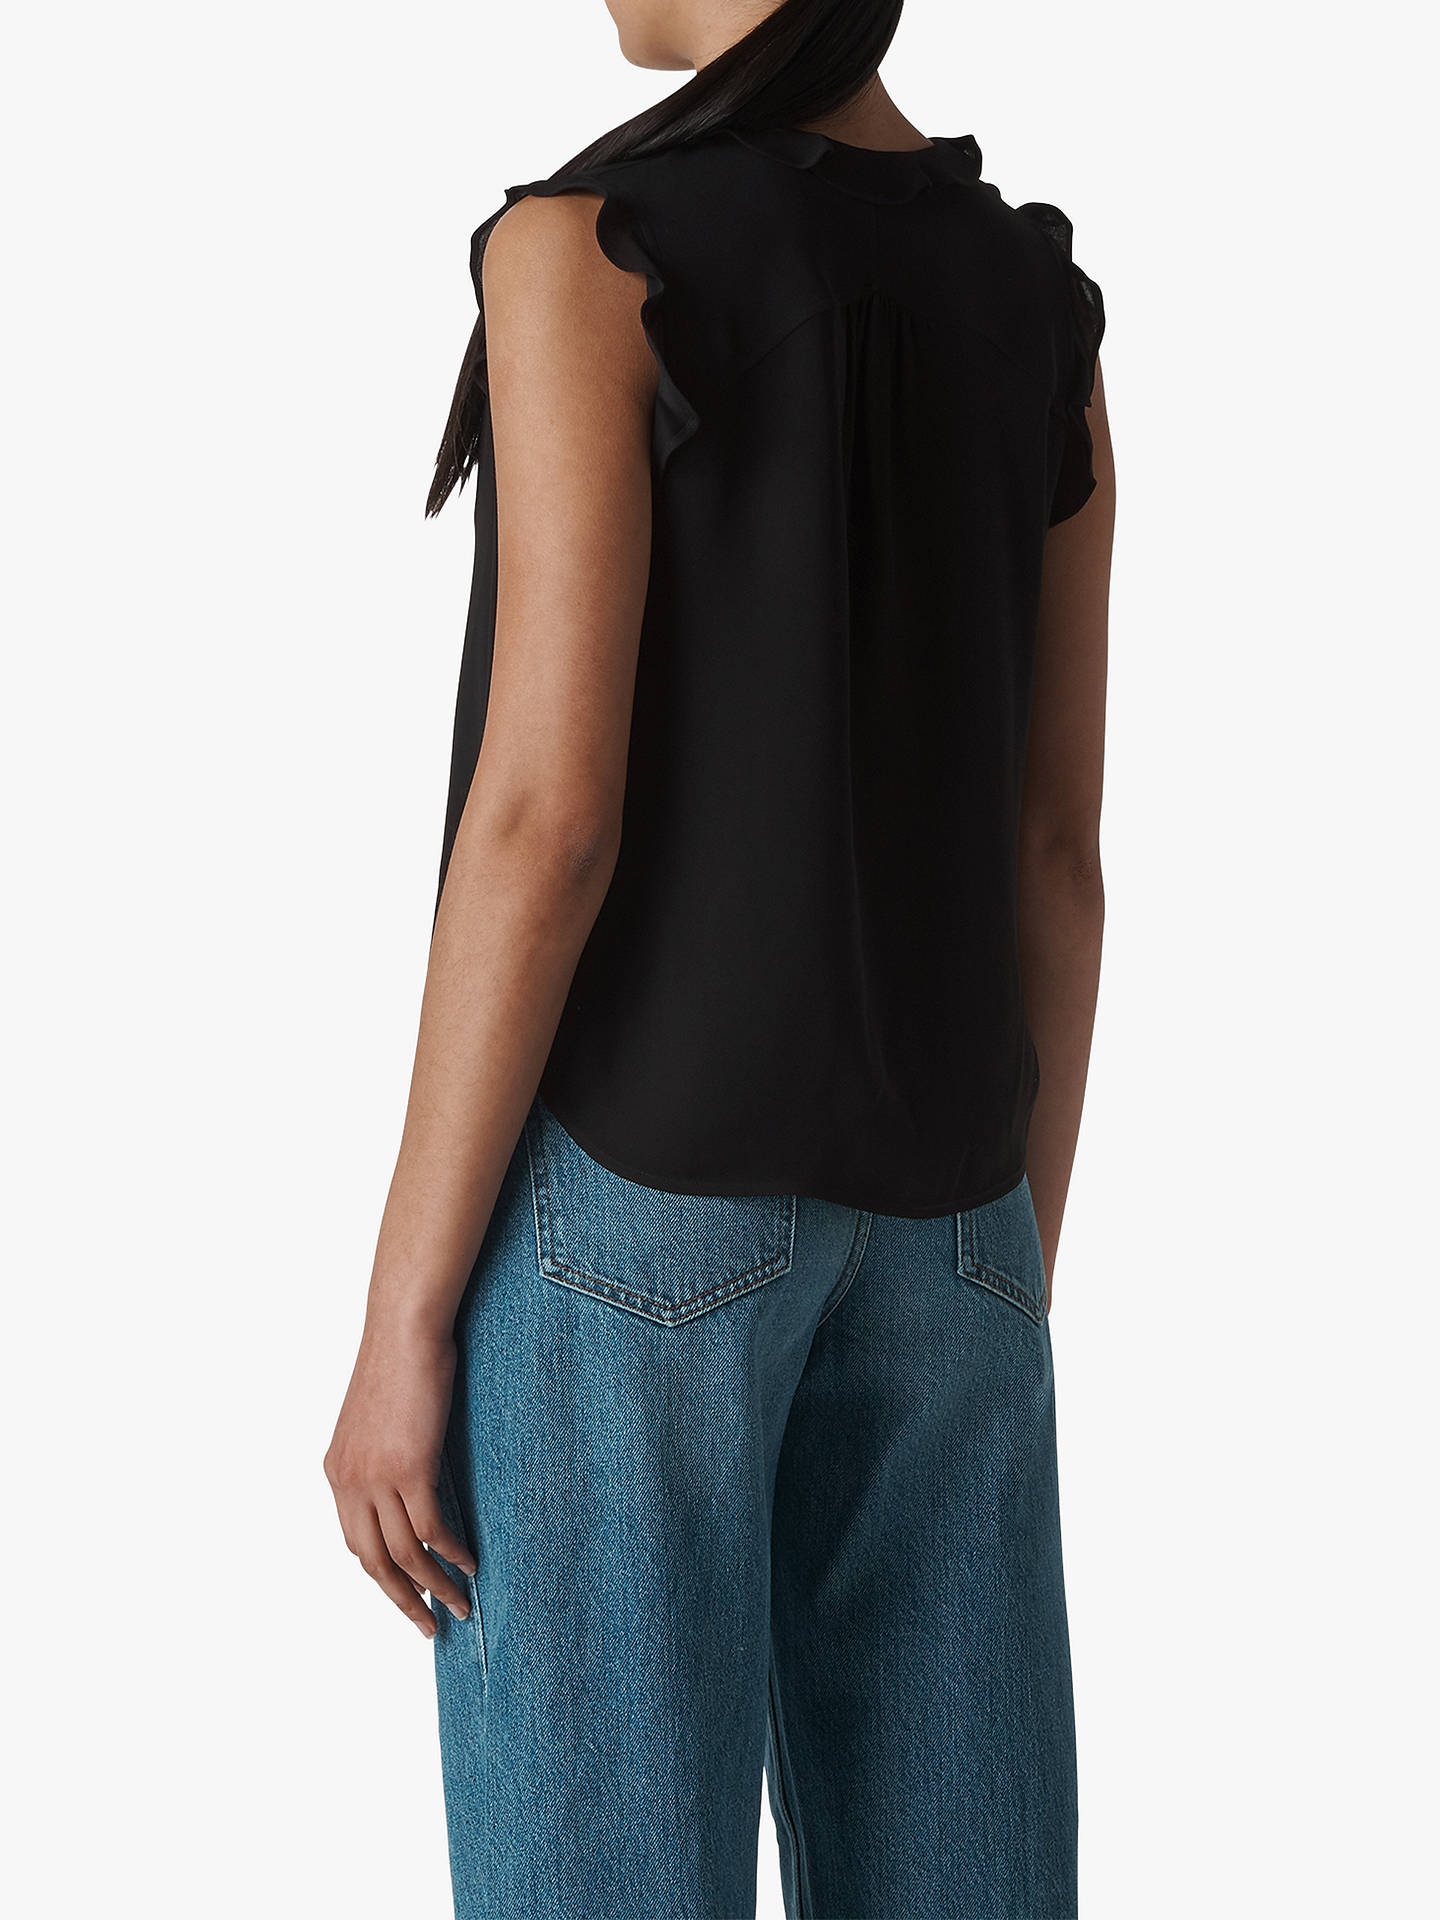 9b1fac96f ... Buy Whistles Emily Frill Detail Top, Black, 6 Online at johnlewis.com  ...